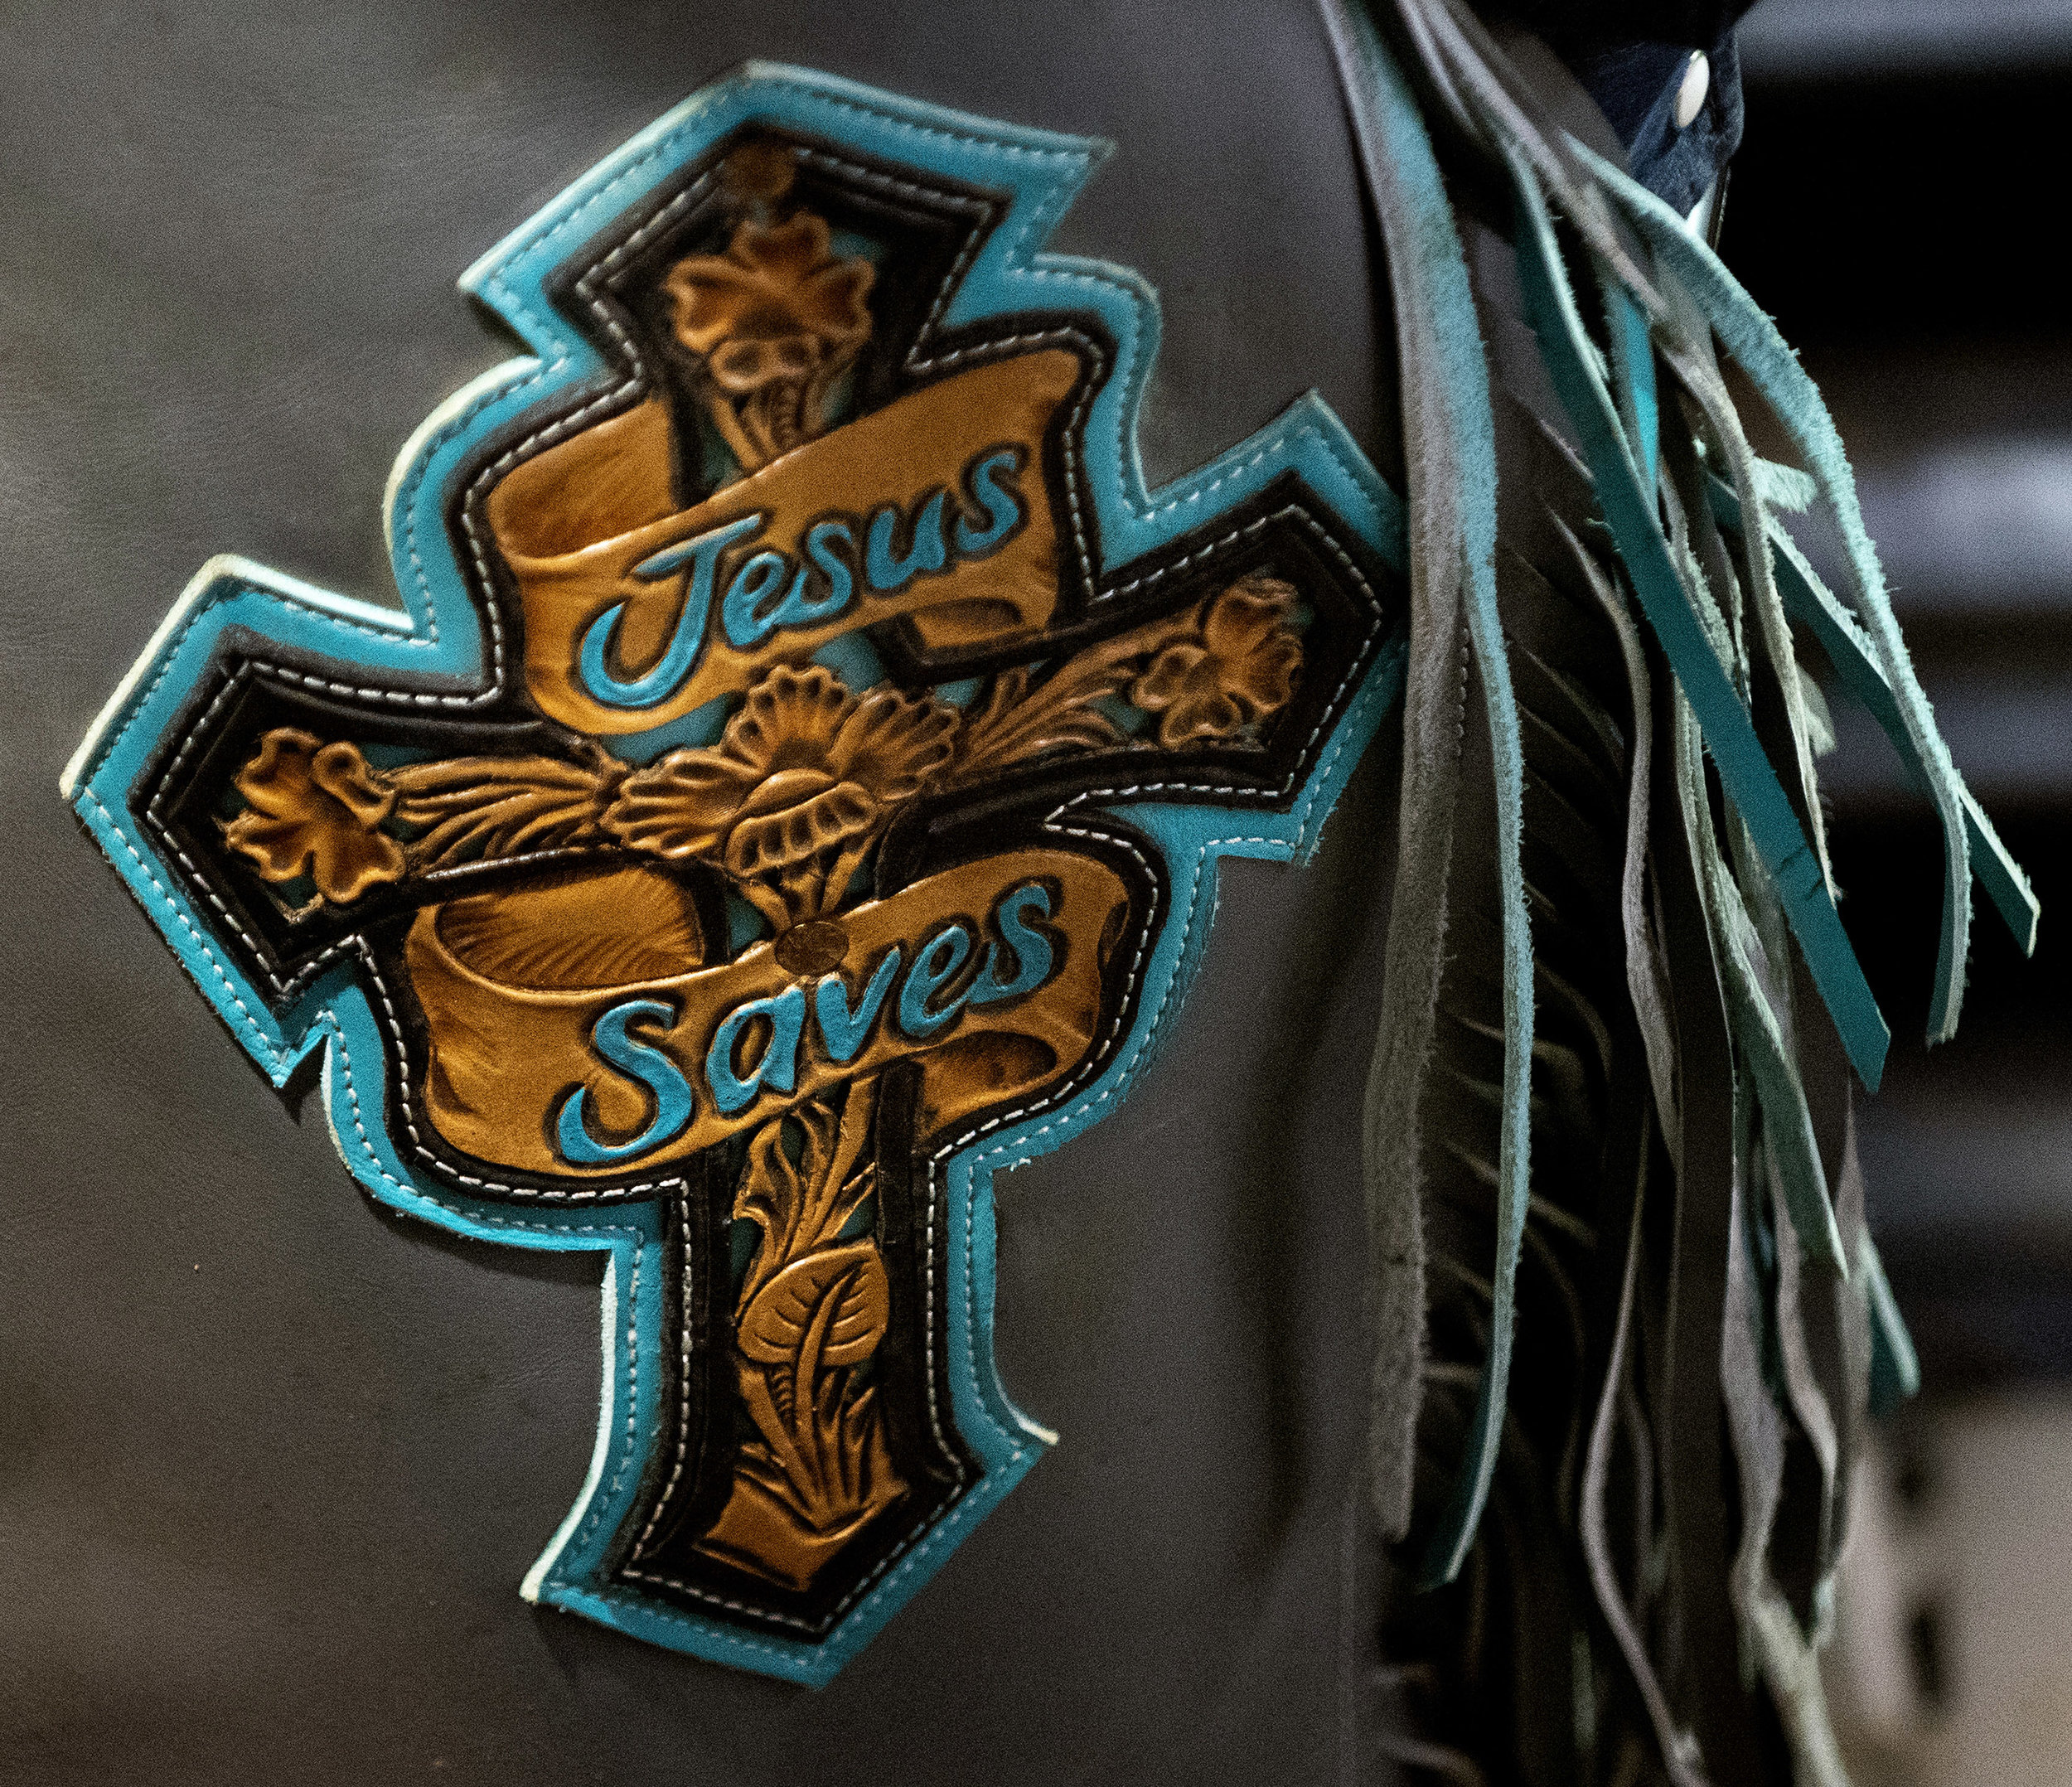 "The chaps worn by bull rider John Mincey, of West Plains, Mo., at the rodeo. ""I feel like God give me a talent to use to glorify him and be a light in this world,"" Mincey said about why he competes in rodeos. ""Whenever I meet him, you know, I want to be like, 'God I laid it all out on the line for you. I used every bit of talent that you give me. I did the best I can.'"""